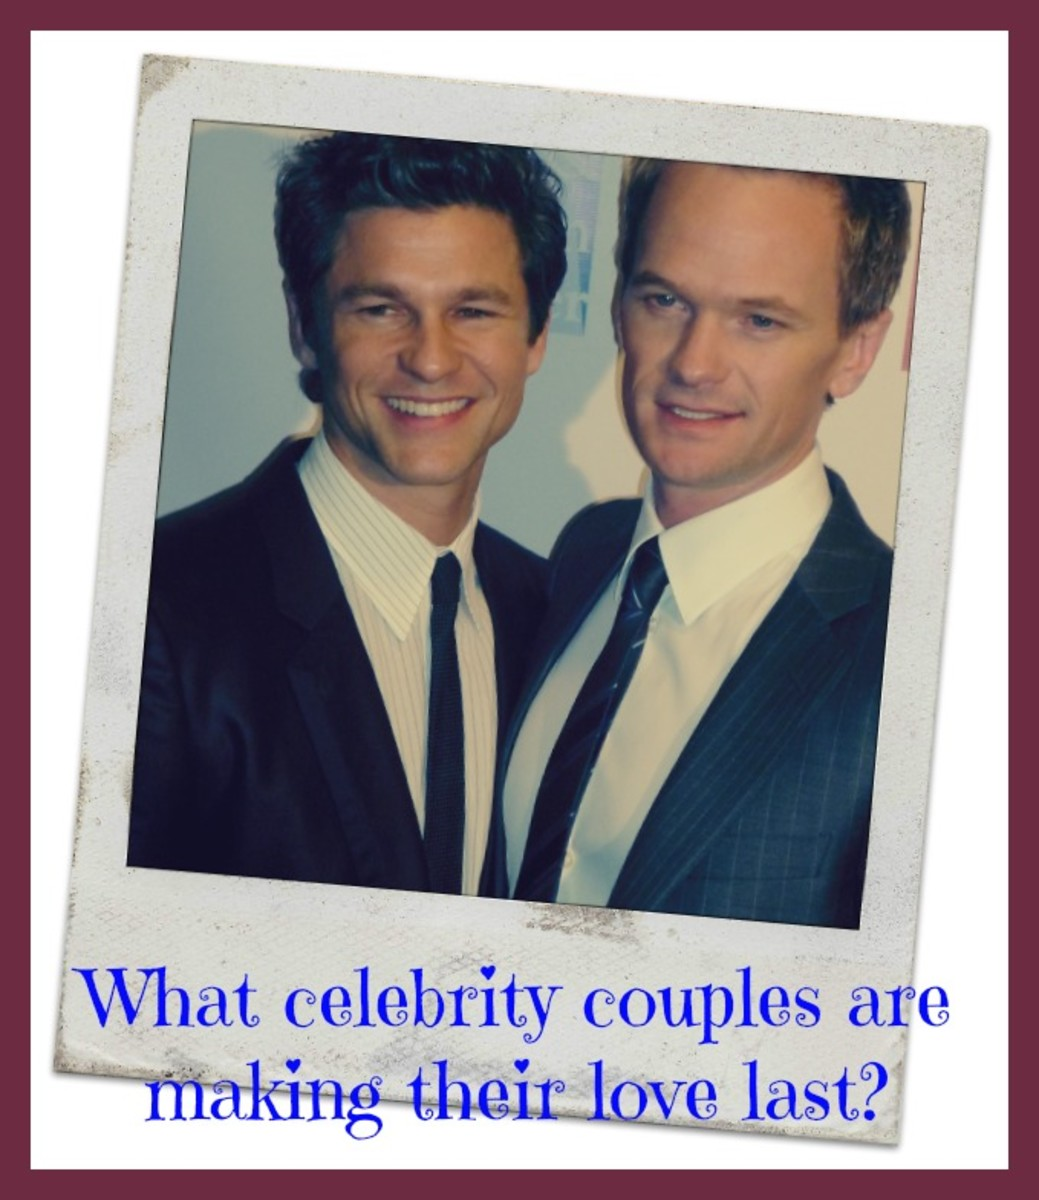 Neil Patrick Harris and his husband, David Burtka, keep their love alive while balancing hectic careers and rearing twins!